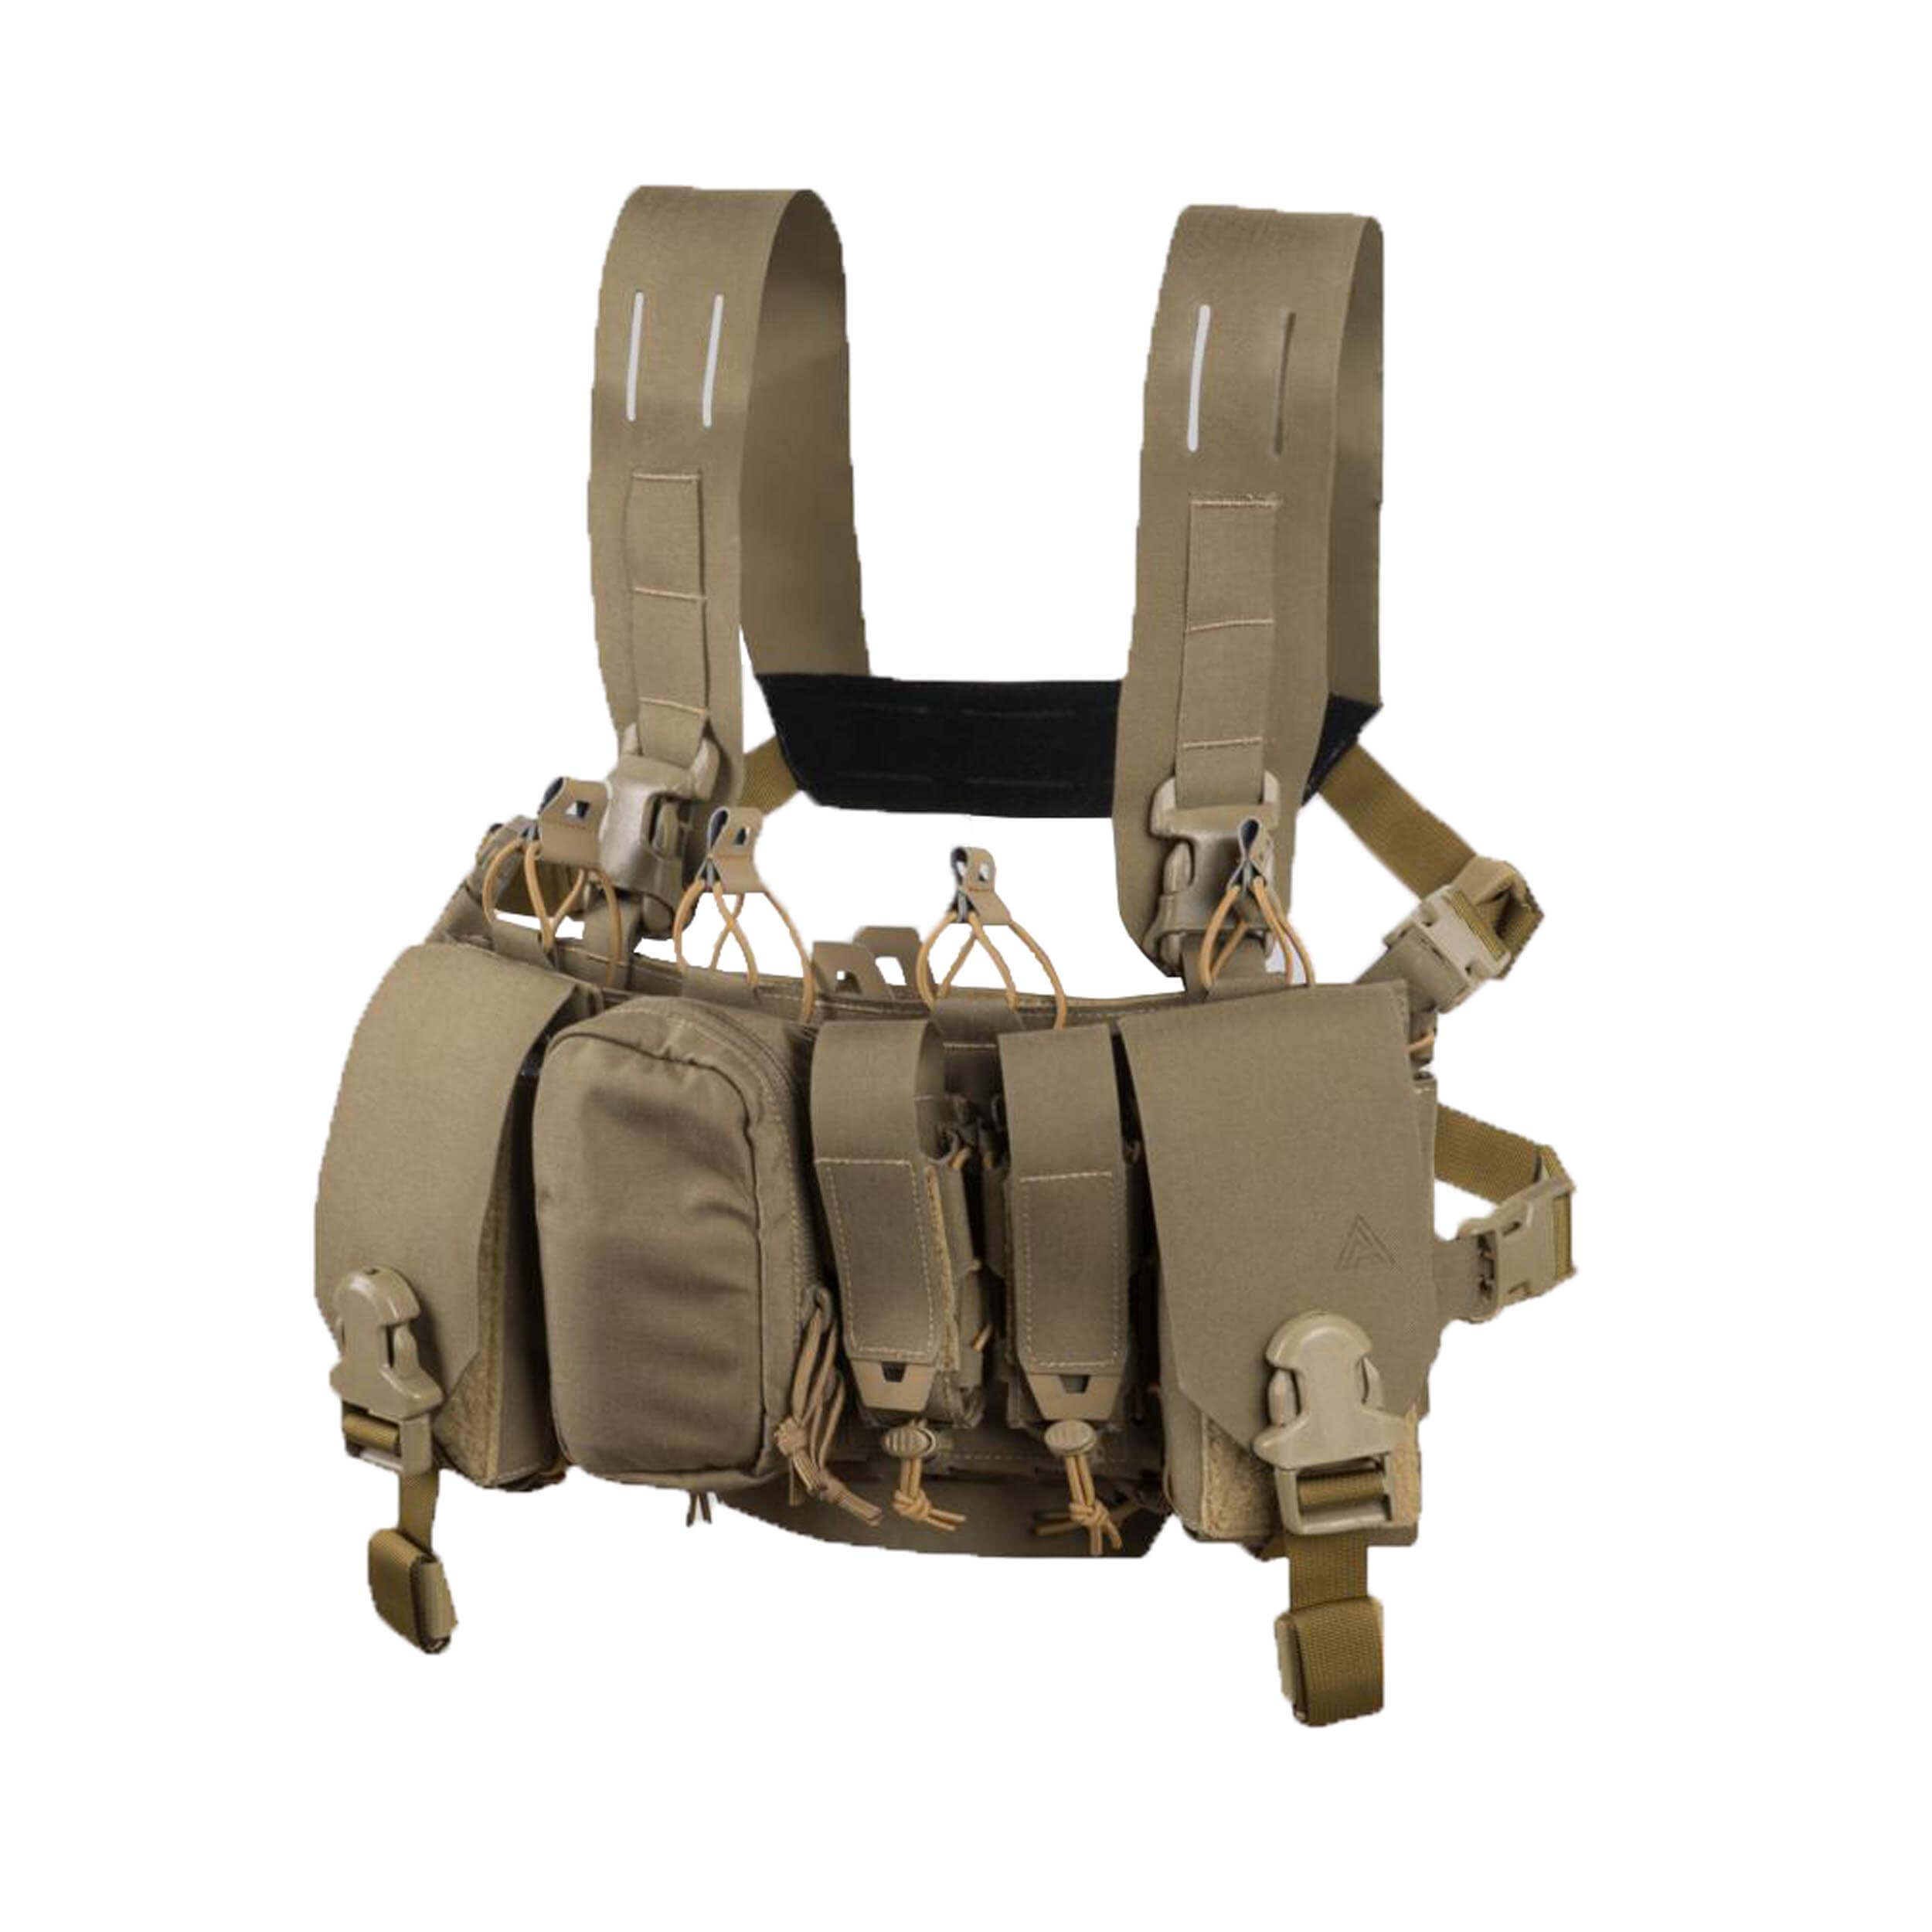 Direct Action Thunderbolt Compact Chest Rig - Cordura - Coyote Brown